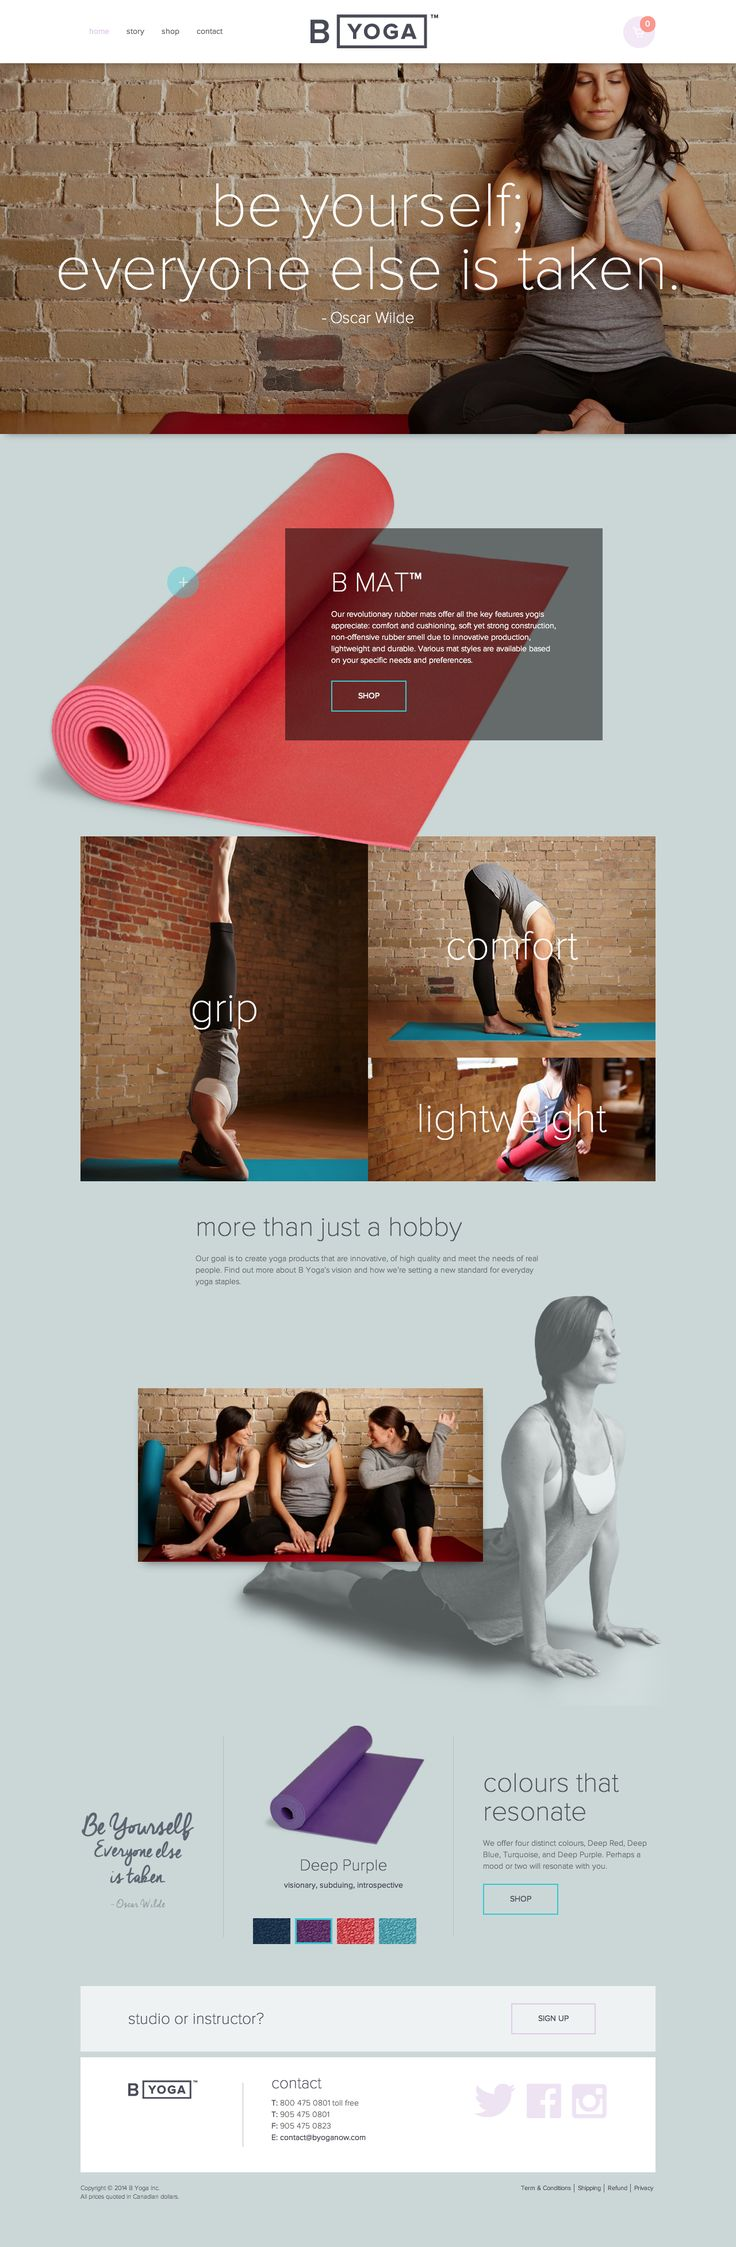 We like the look of the overlapping images used in B Yoga's website design. #webdesign #gridlayout #photography